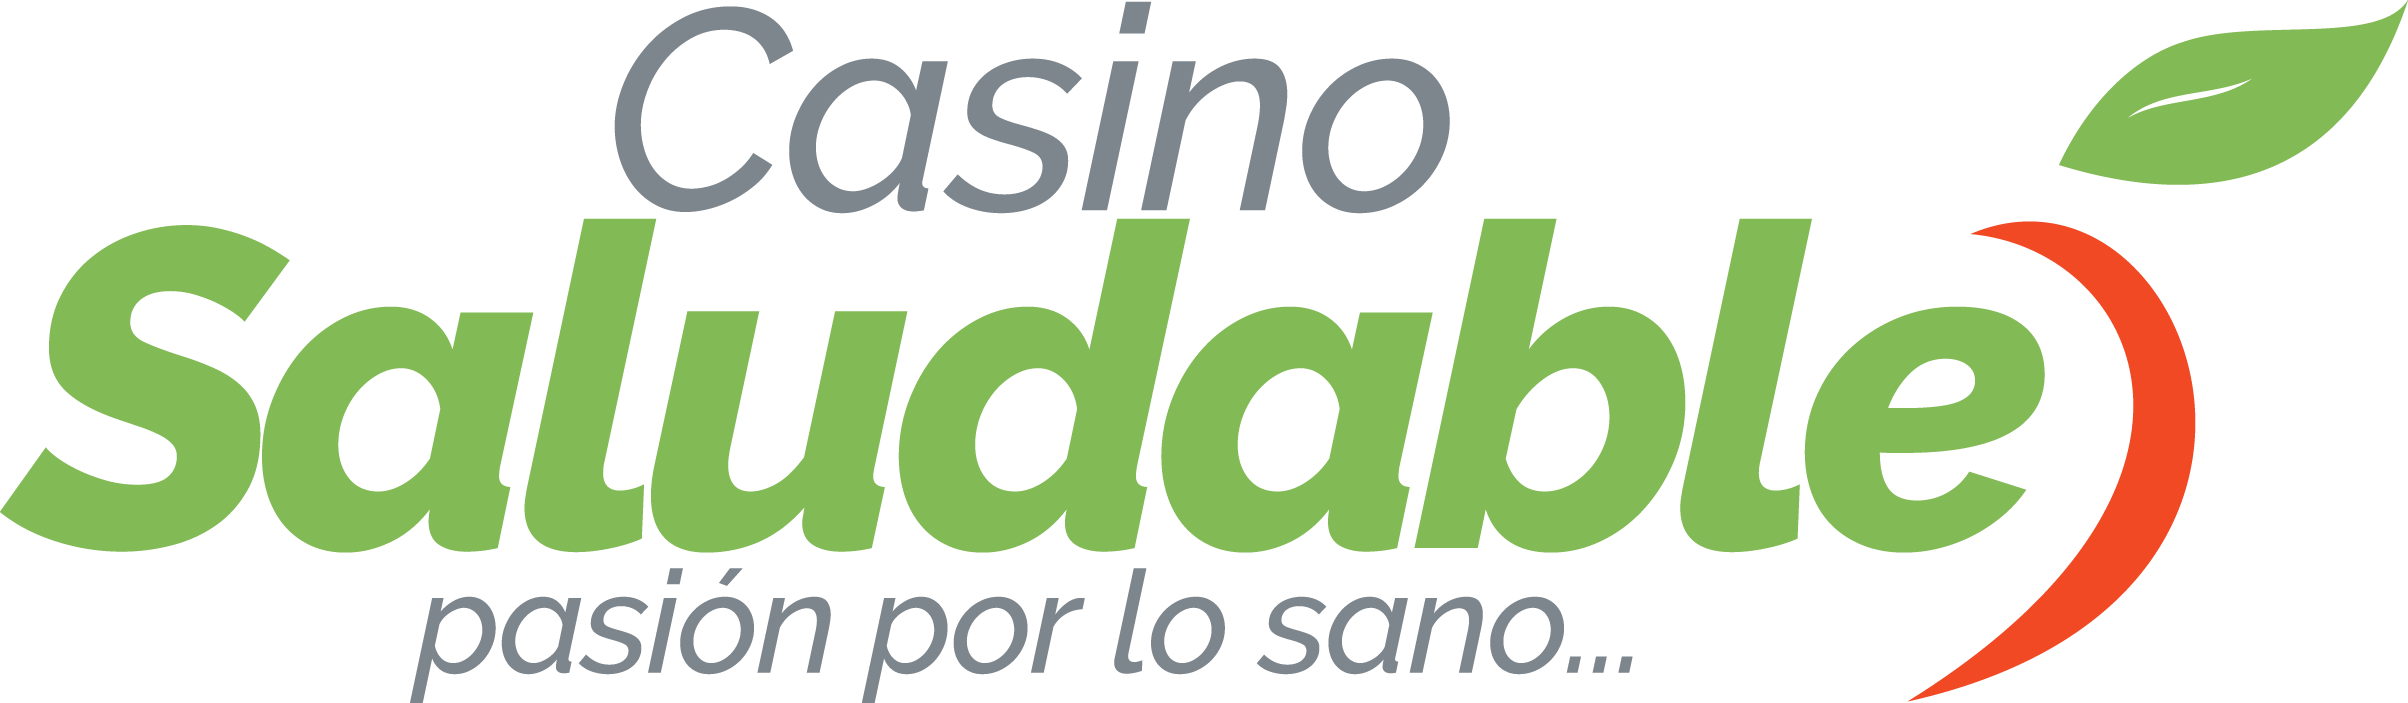 Casino Saludable